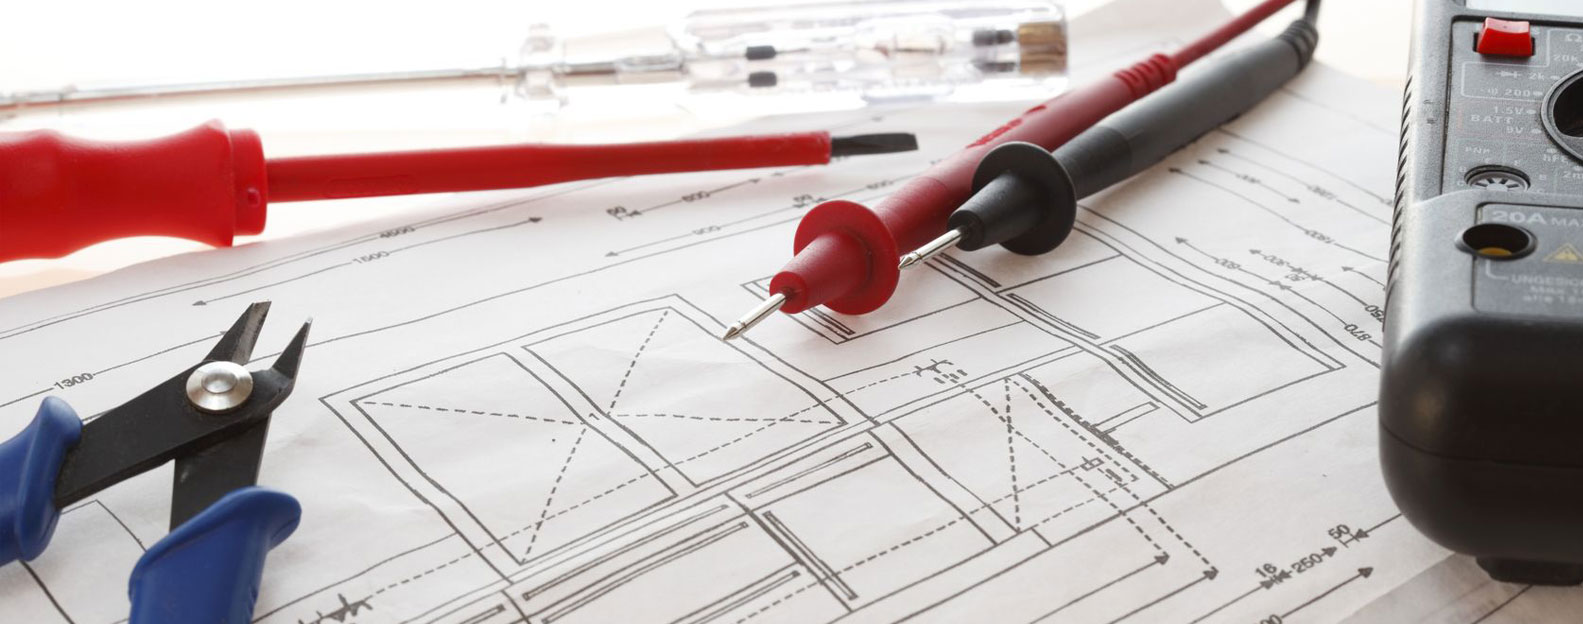 Abco West Electrical Construction And Design Llc